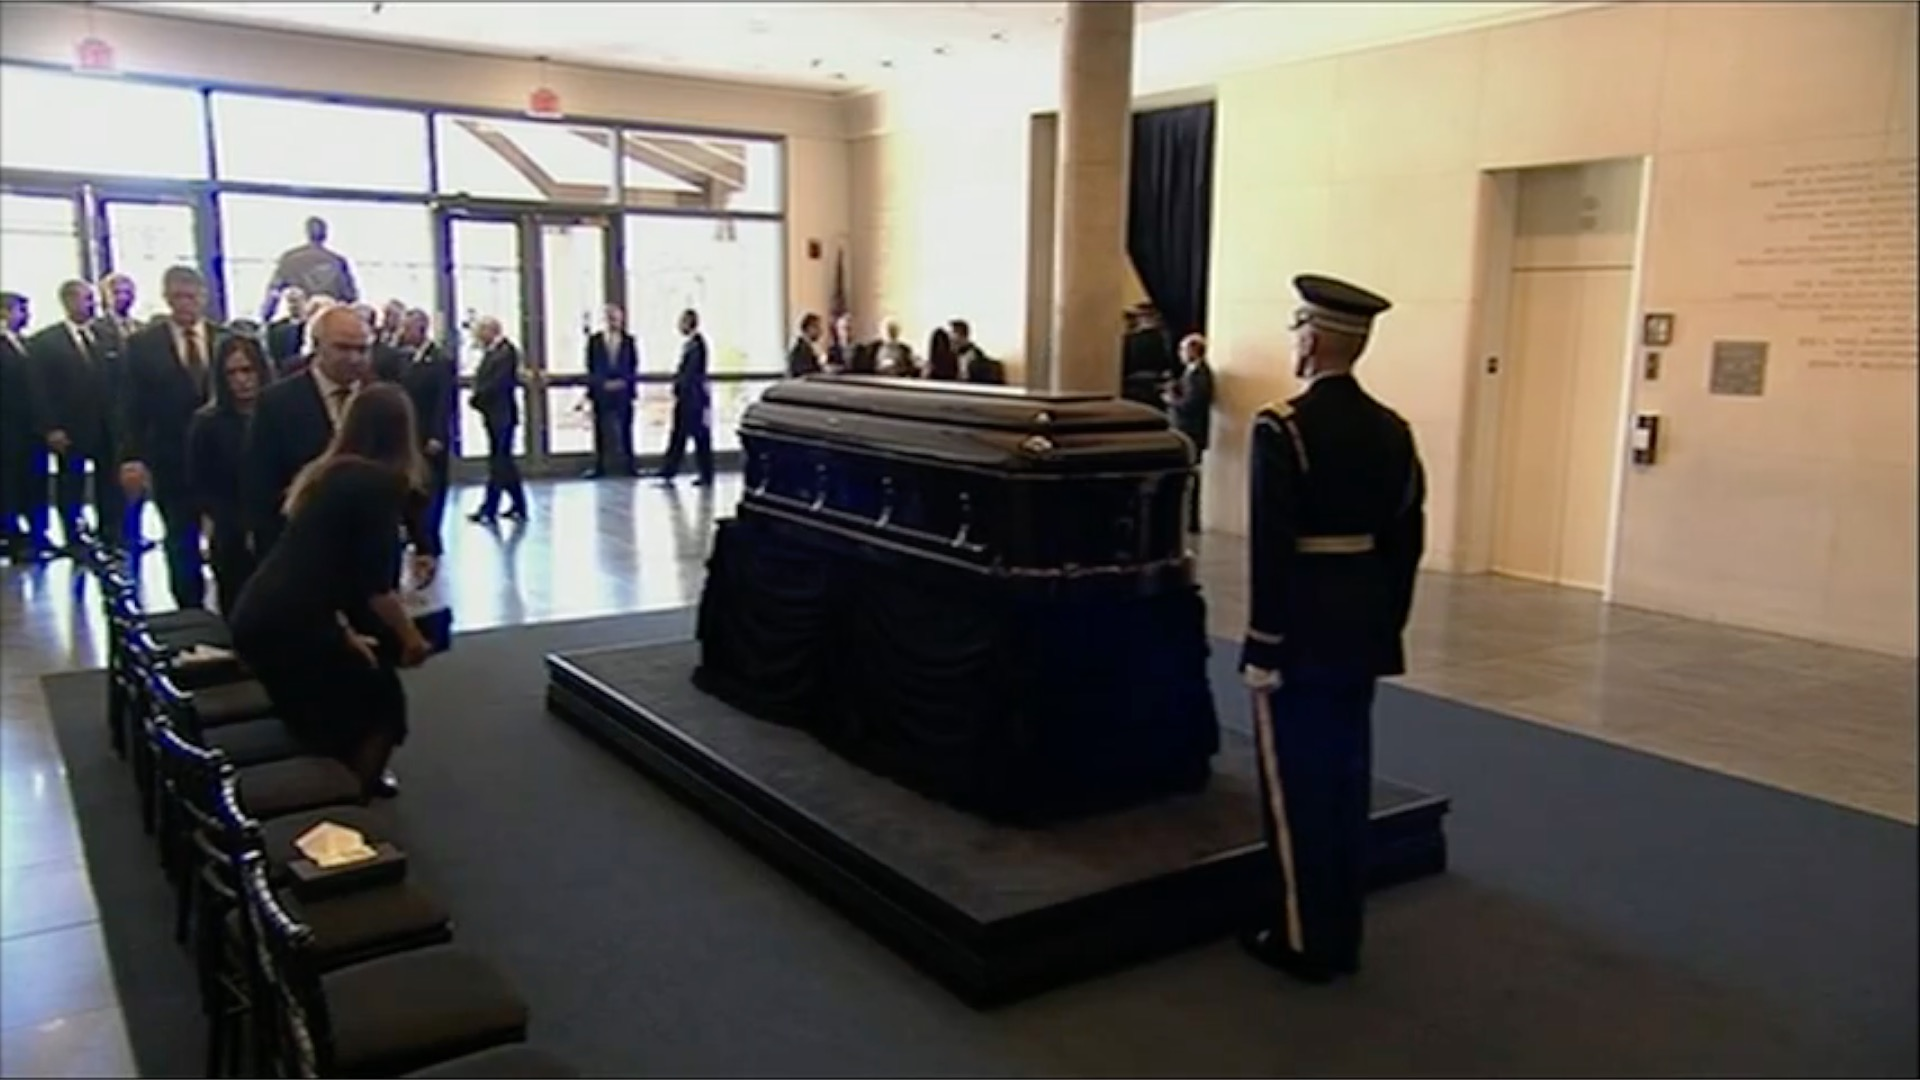 Nancy Reagan's casket arrives at Reagan Library